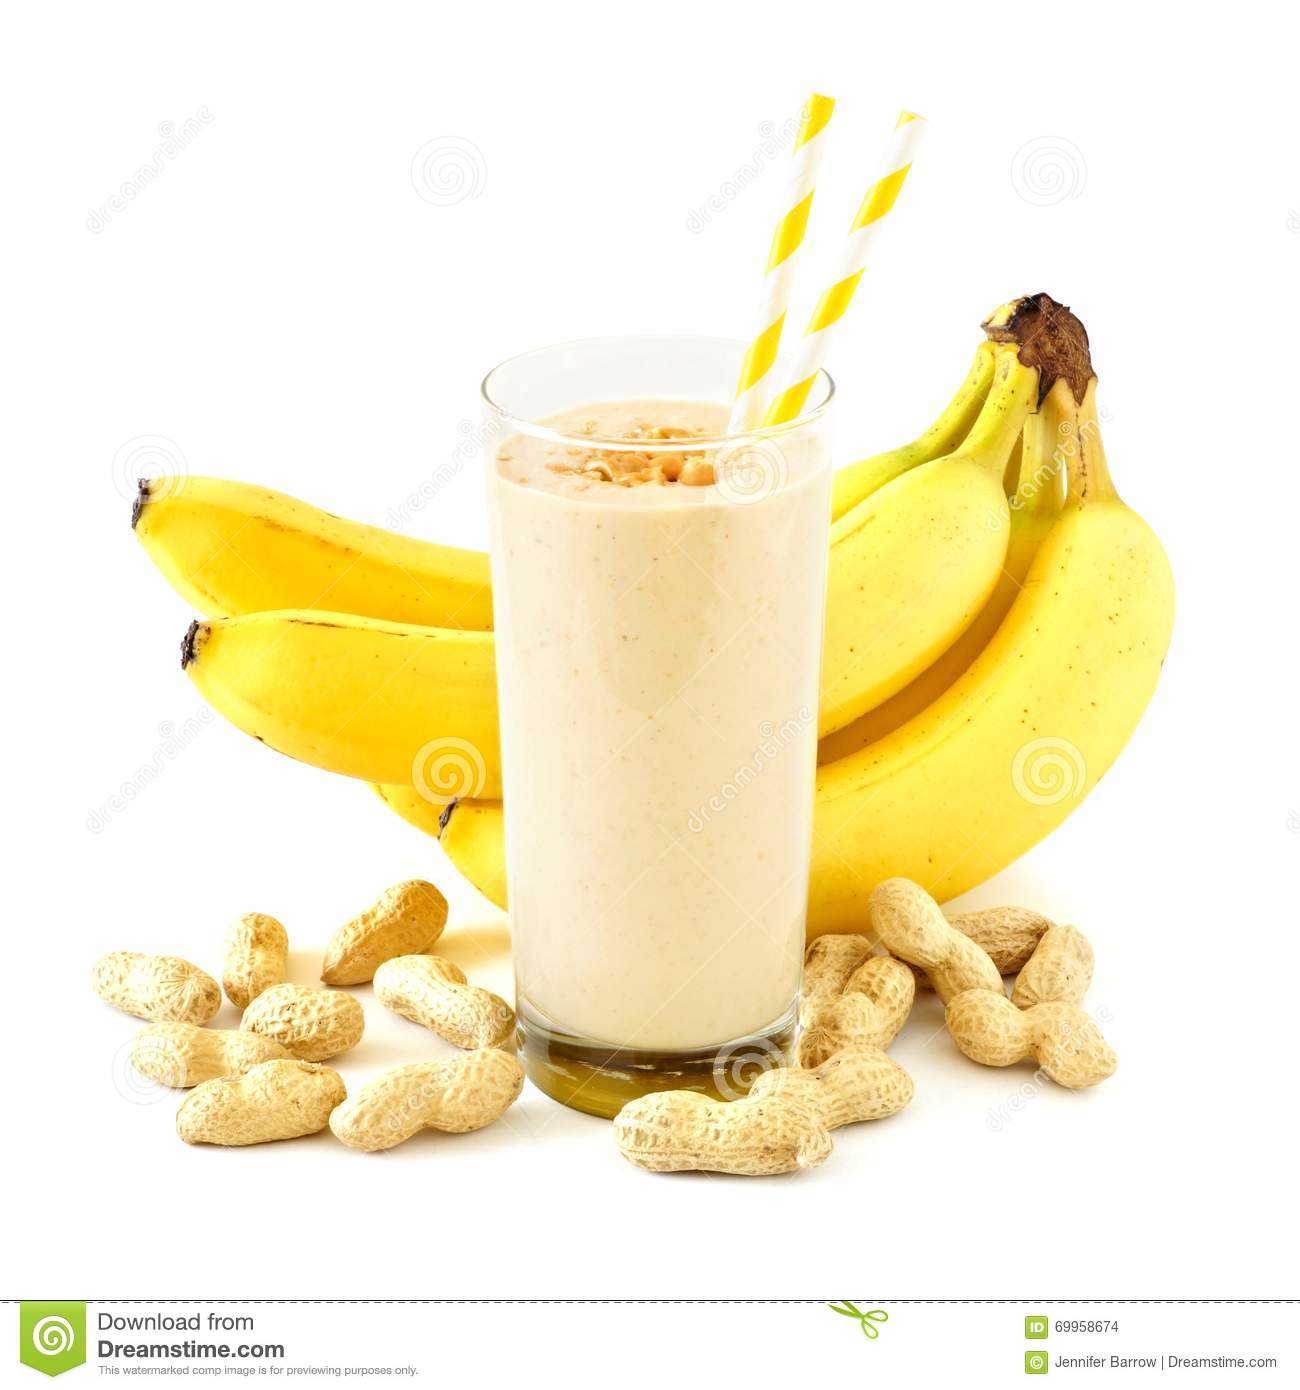 Peanut-butter banana smoothie with scattered ingredients over white